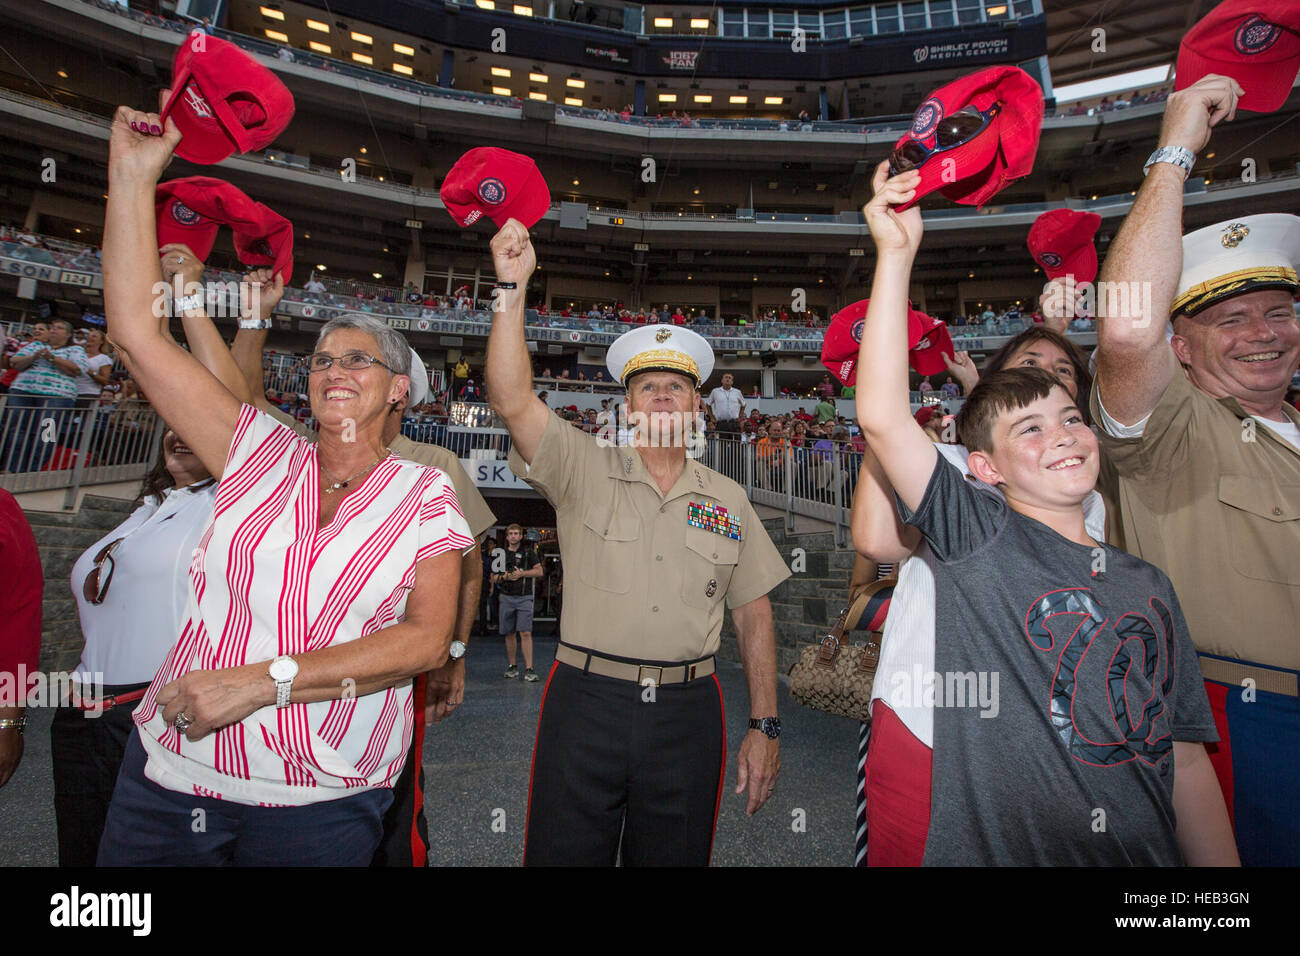 Commandant of the Marine Corps Gen. Robert B. Neller waves his hat during a baseball game at Nationals Park, Washington, Stock Photo